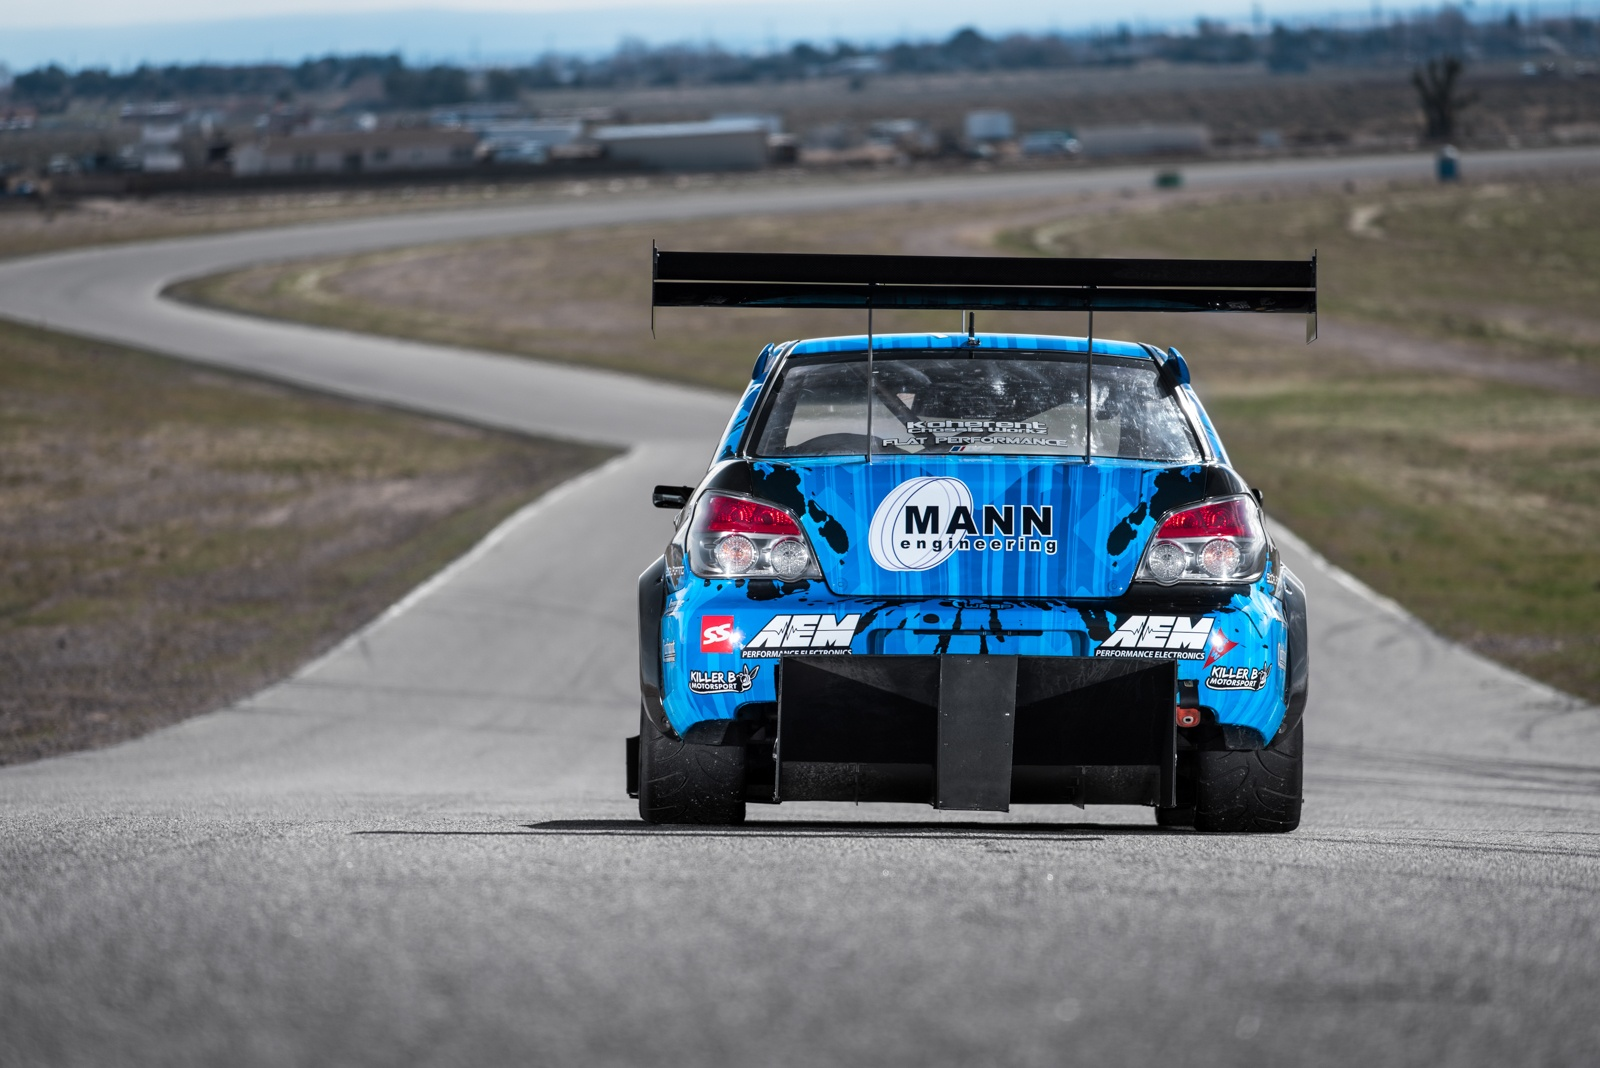 Under the Hood of Mark Jager's 800hp Time Attack WRX STi